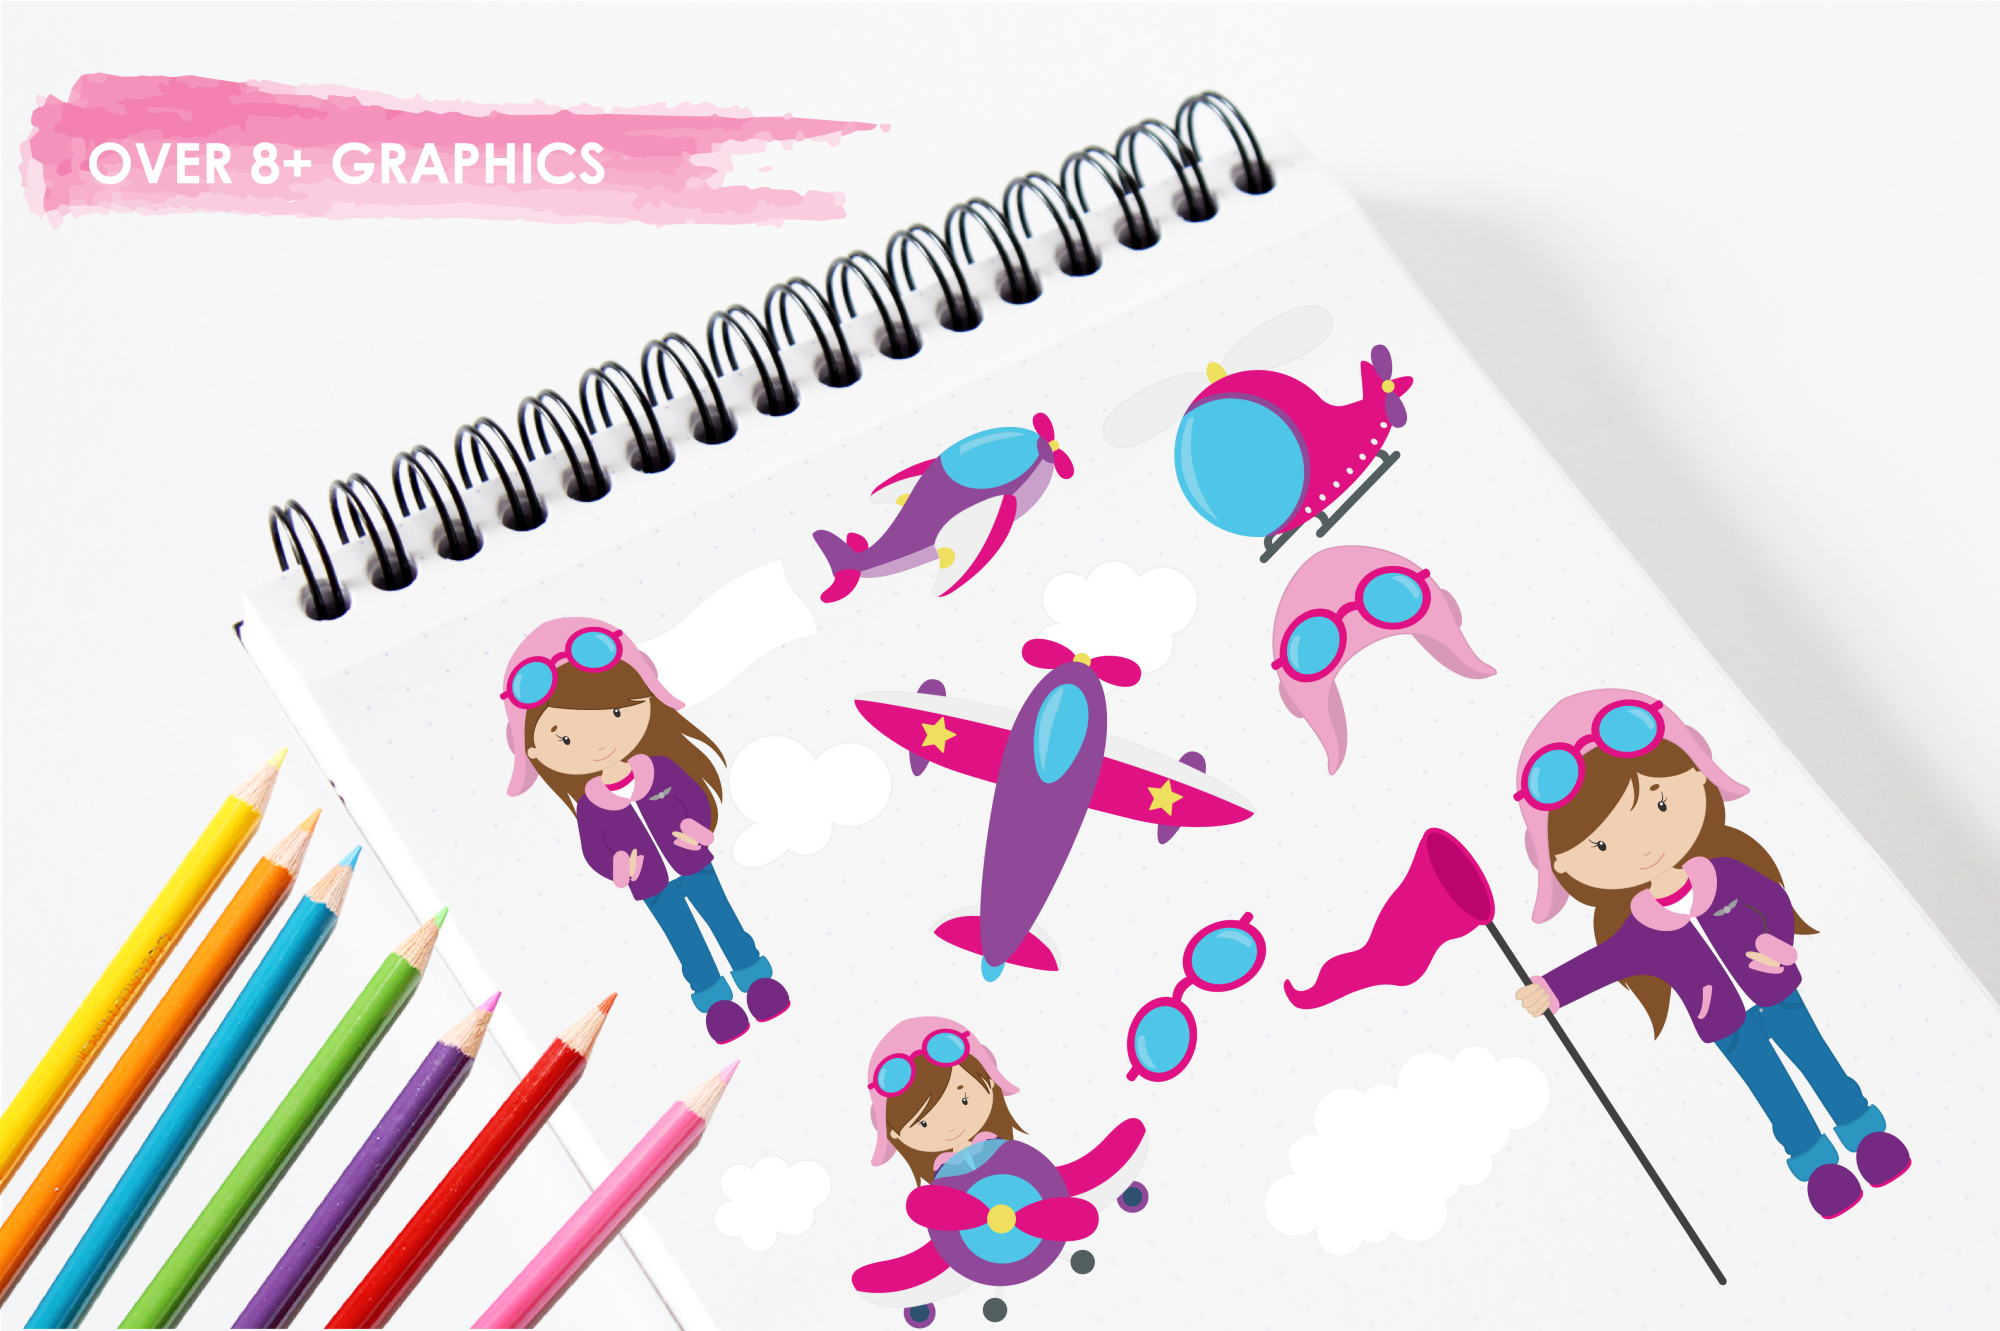 Flygirls graphics and illustrations example image 3